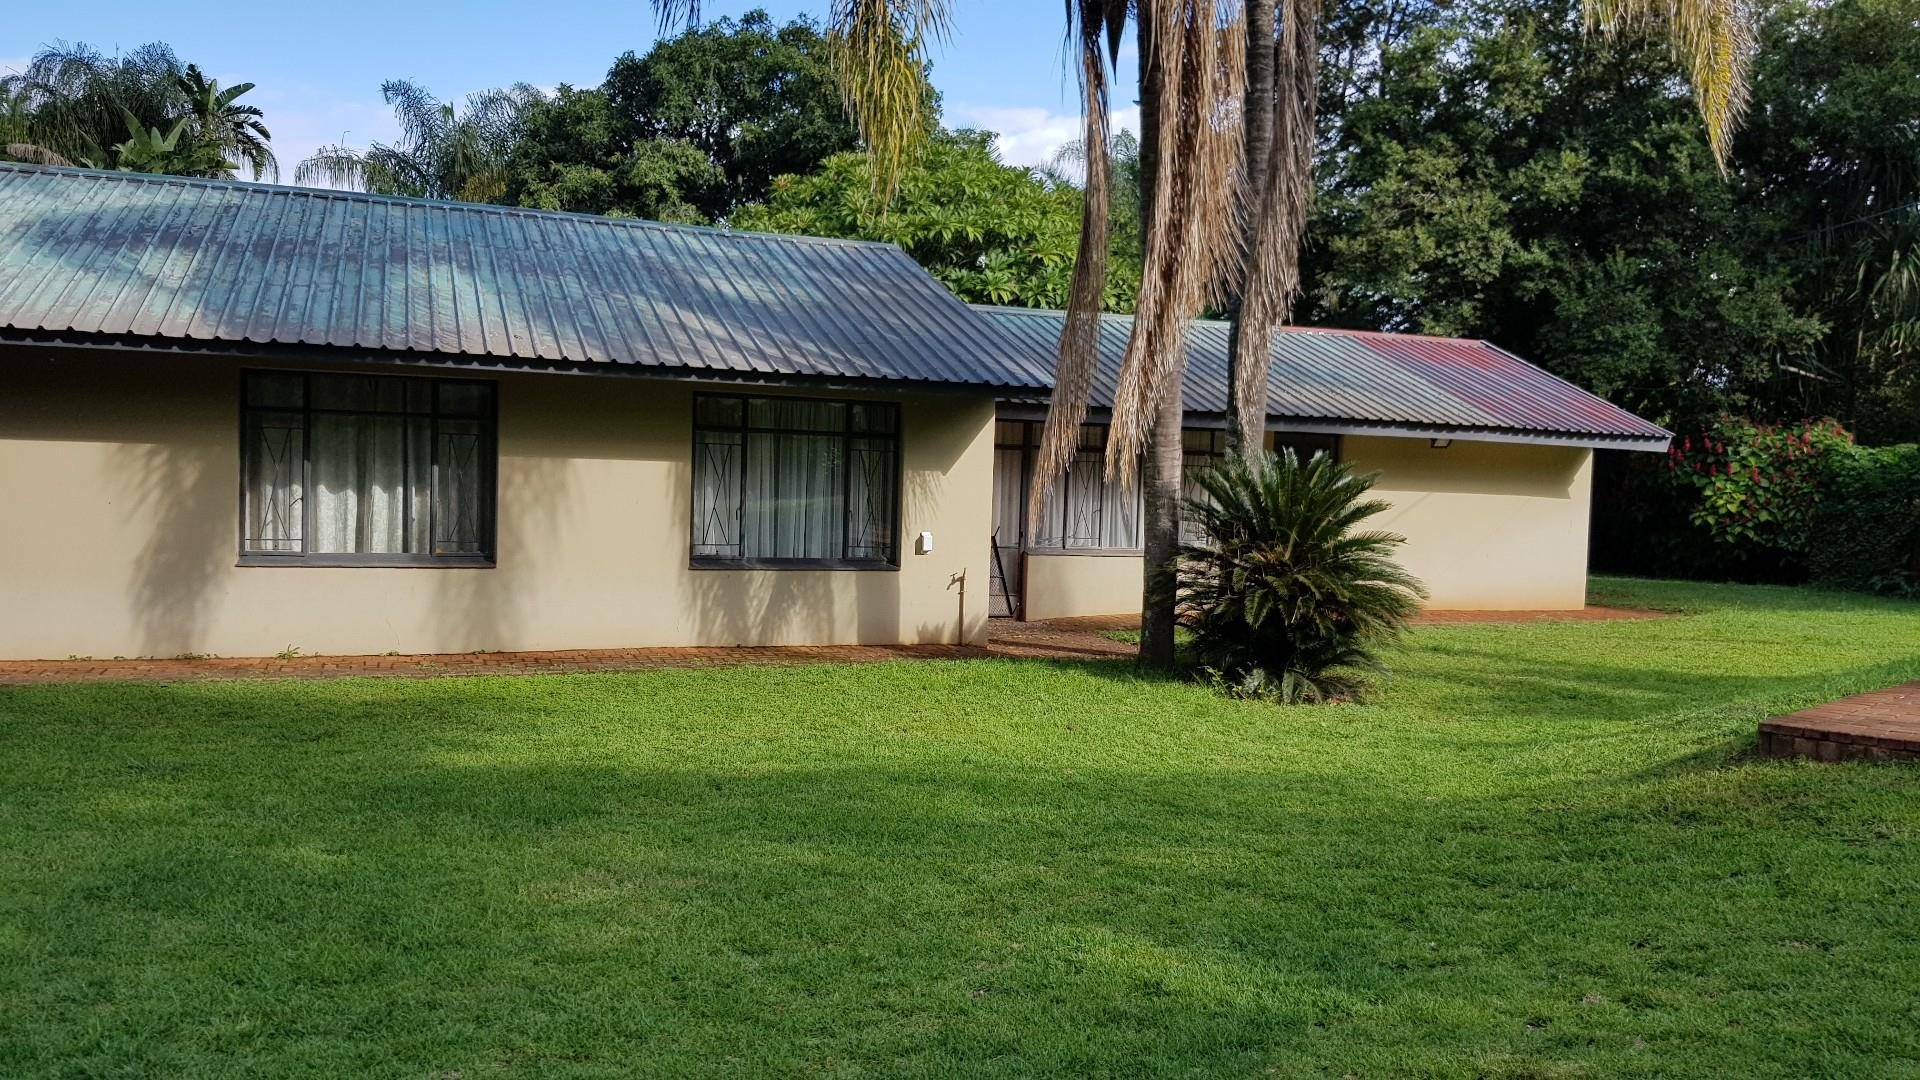 5 Bedroom House For Sale in Louis Trichardt